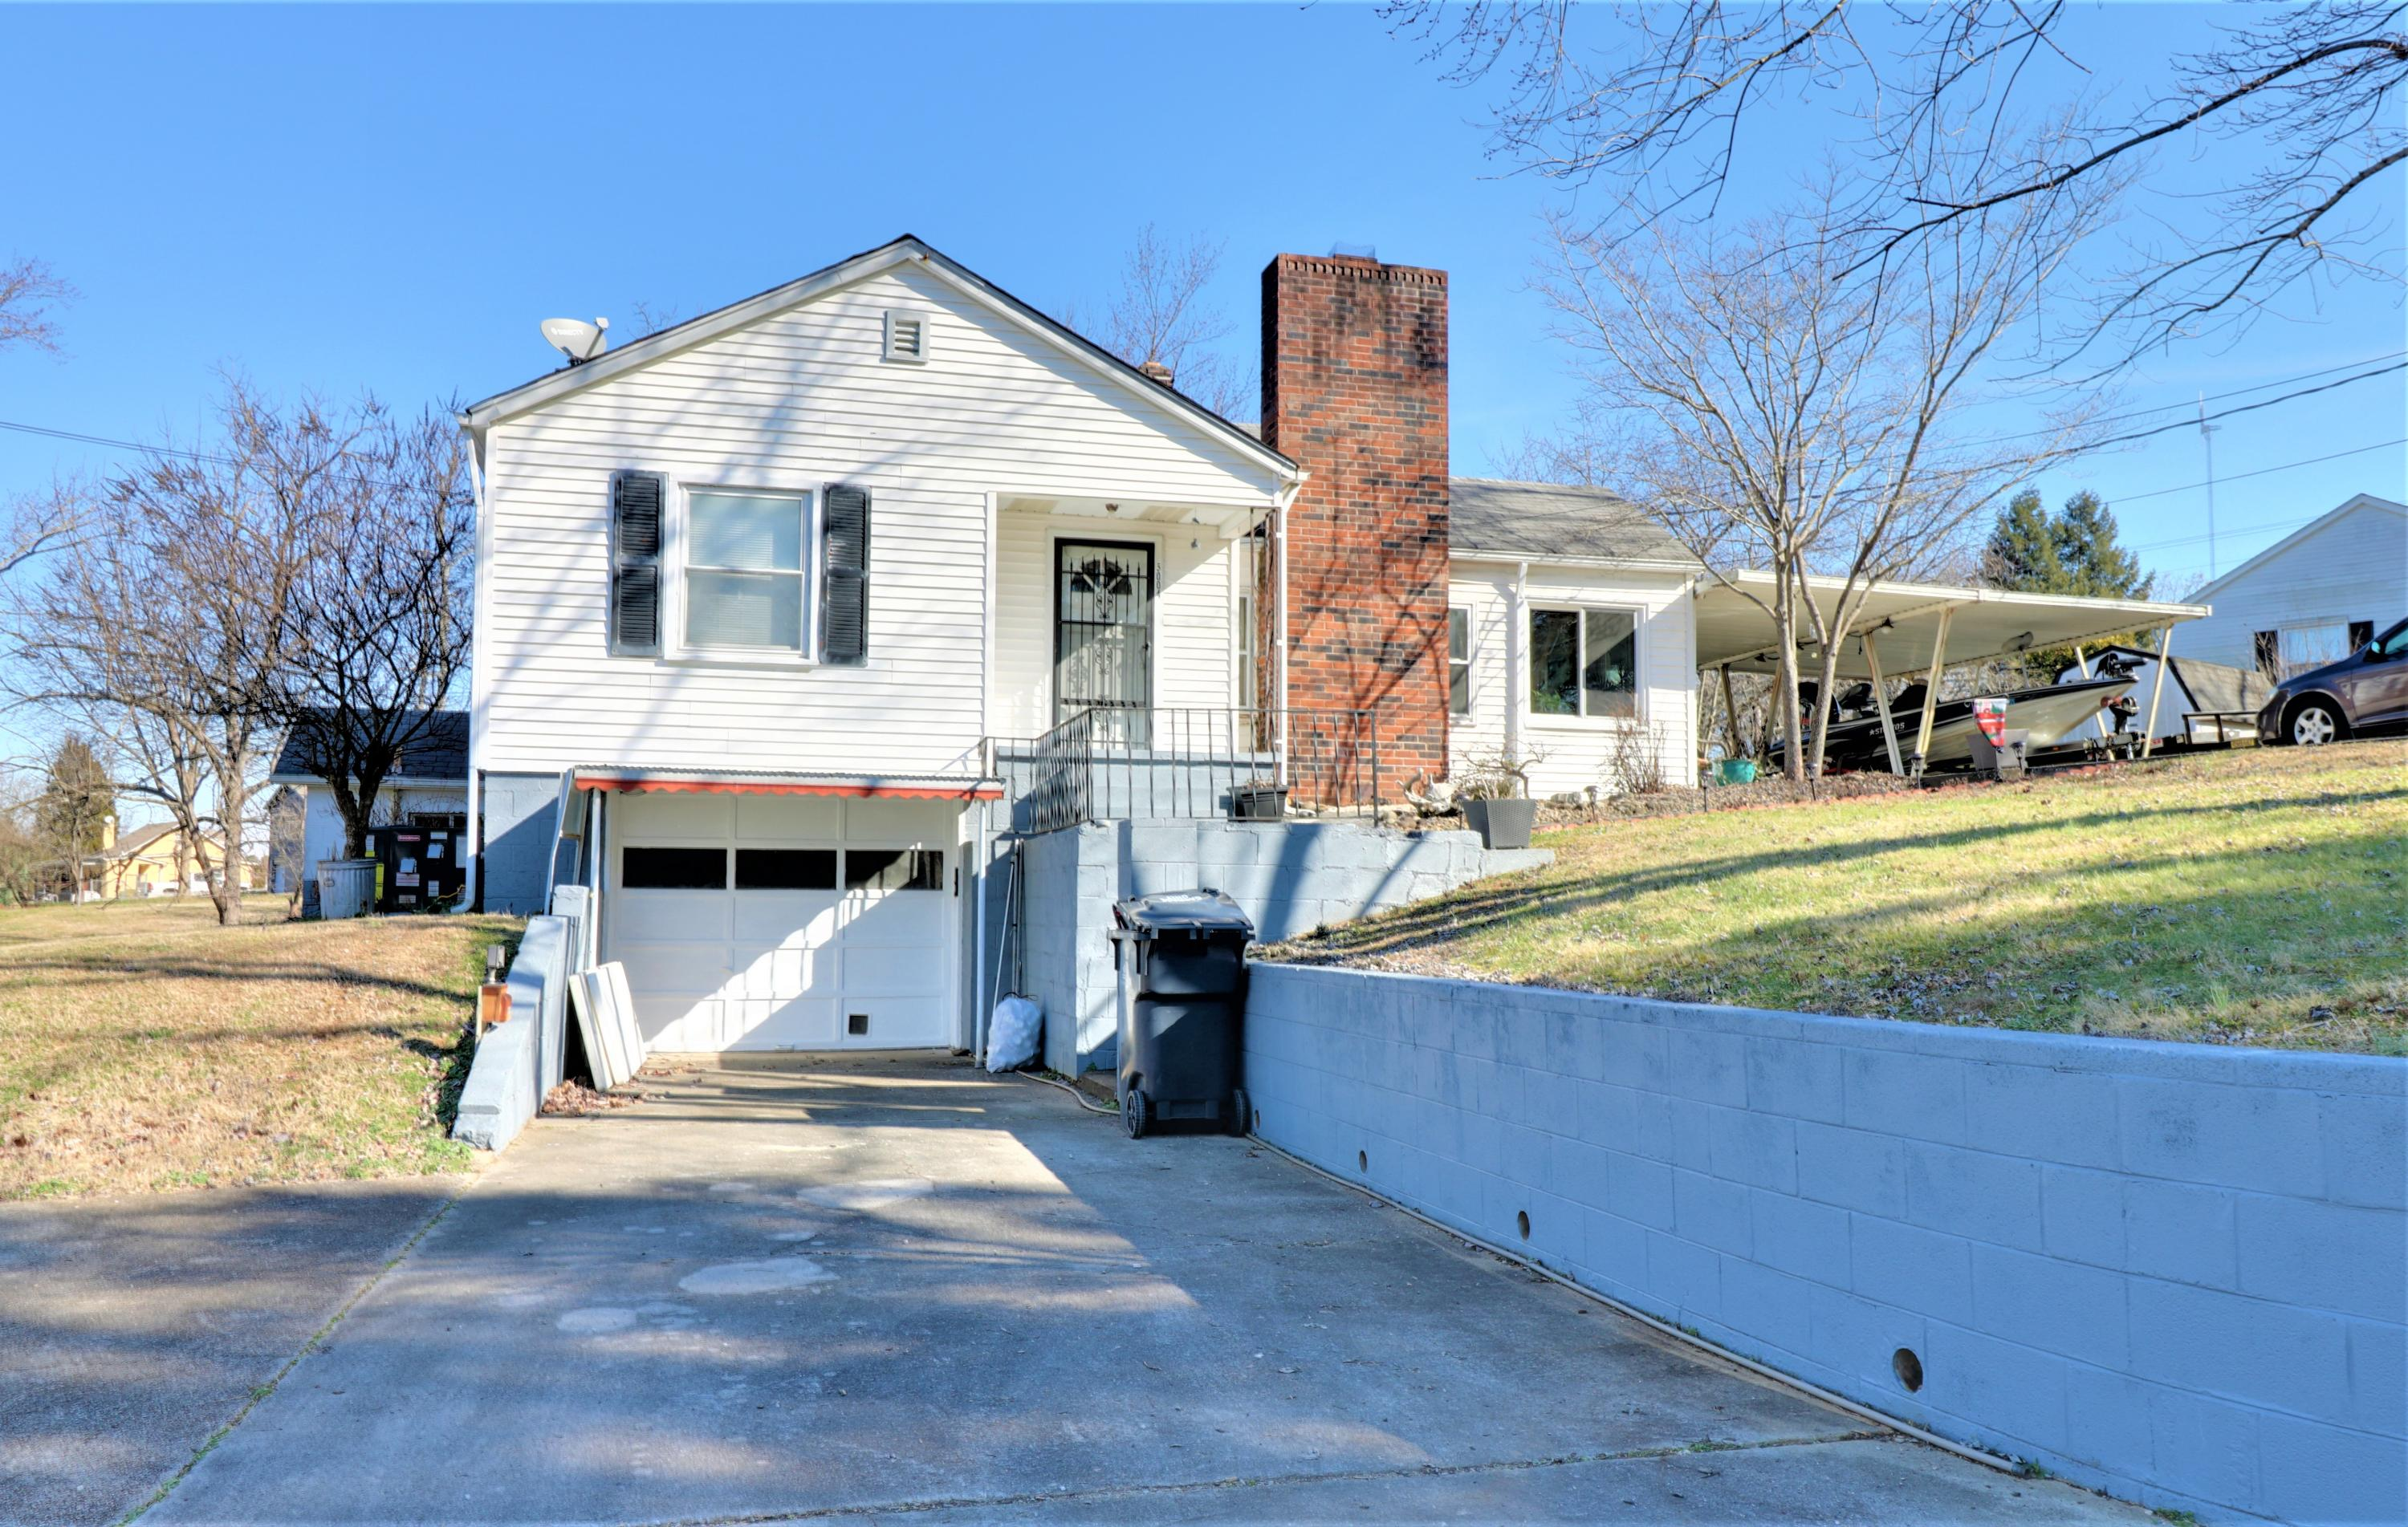 5004 Clover Rd, Knoxville, Tennessee, United States 37912, 3 Bedrooms Bedrooms, ,2 BathroomsBathrooms,Single Family,For Sale,Clover Rd,1064825